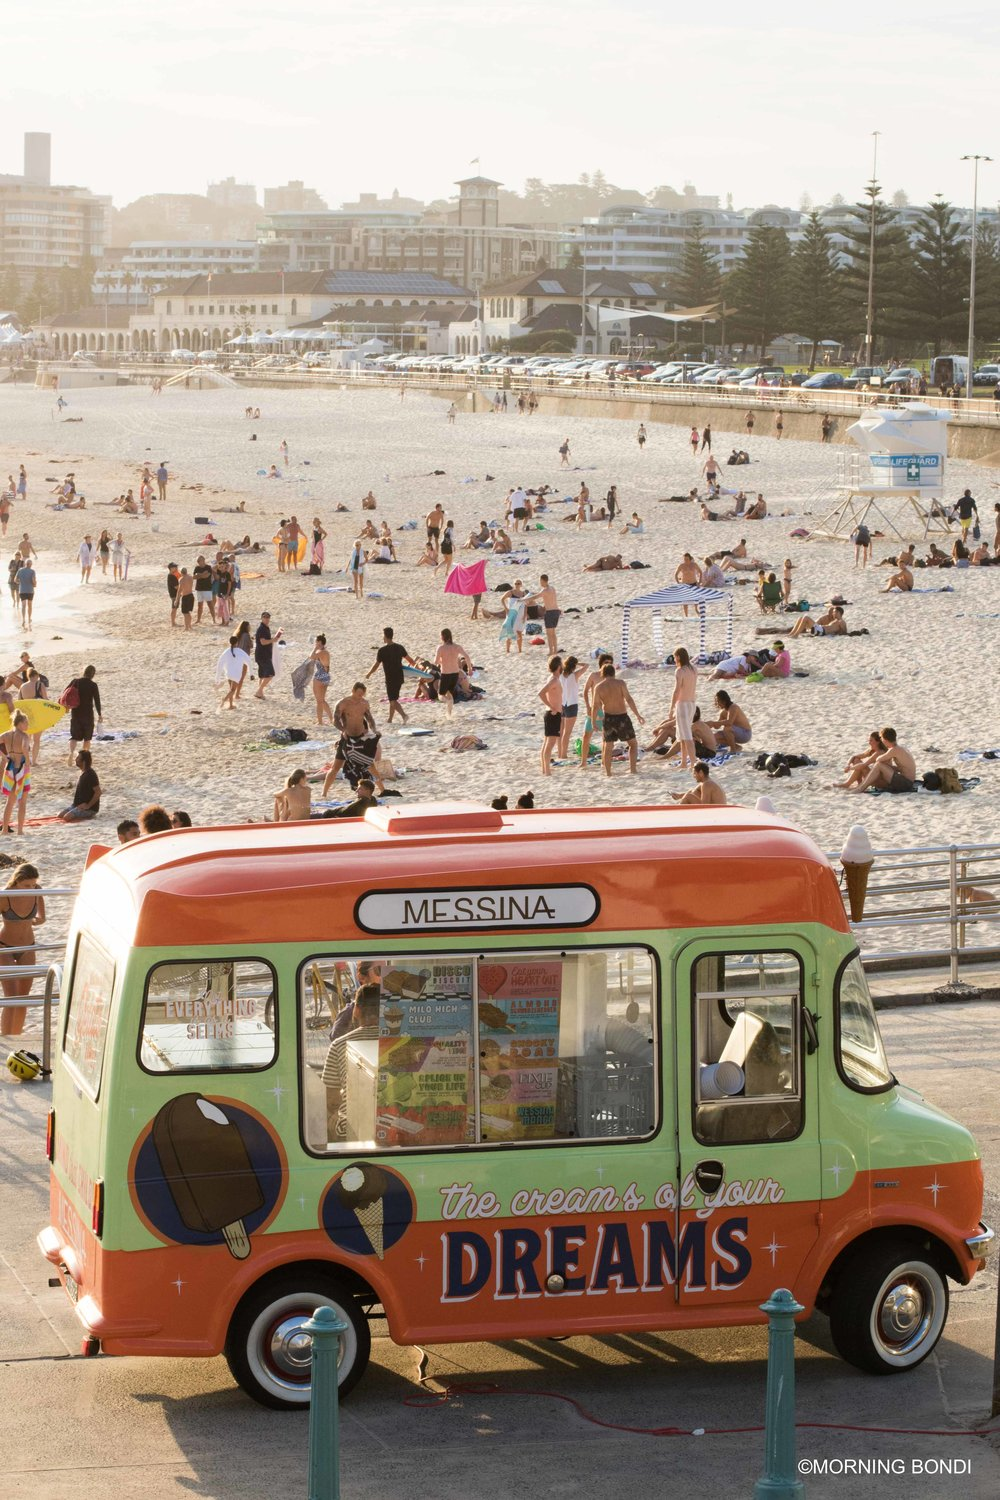 Messina - the best ice creams in Bondi